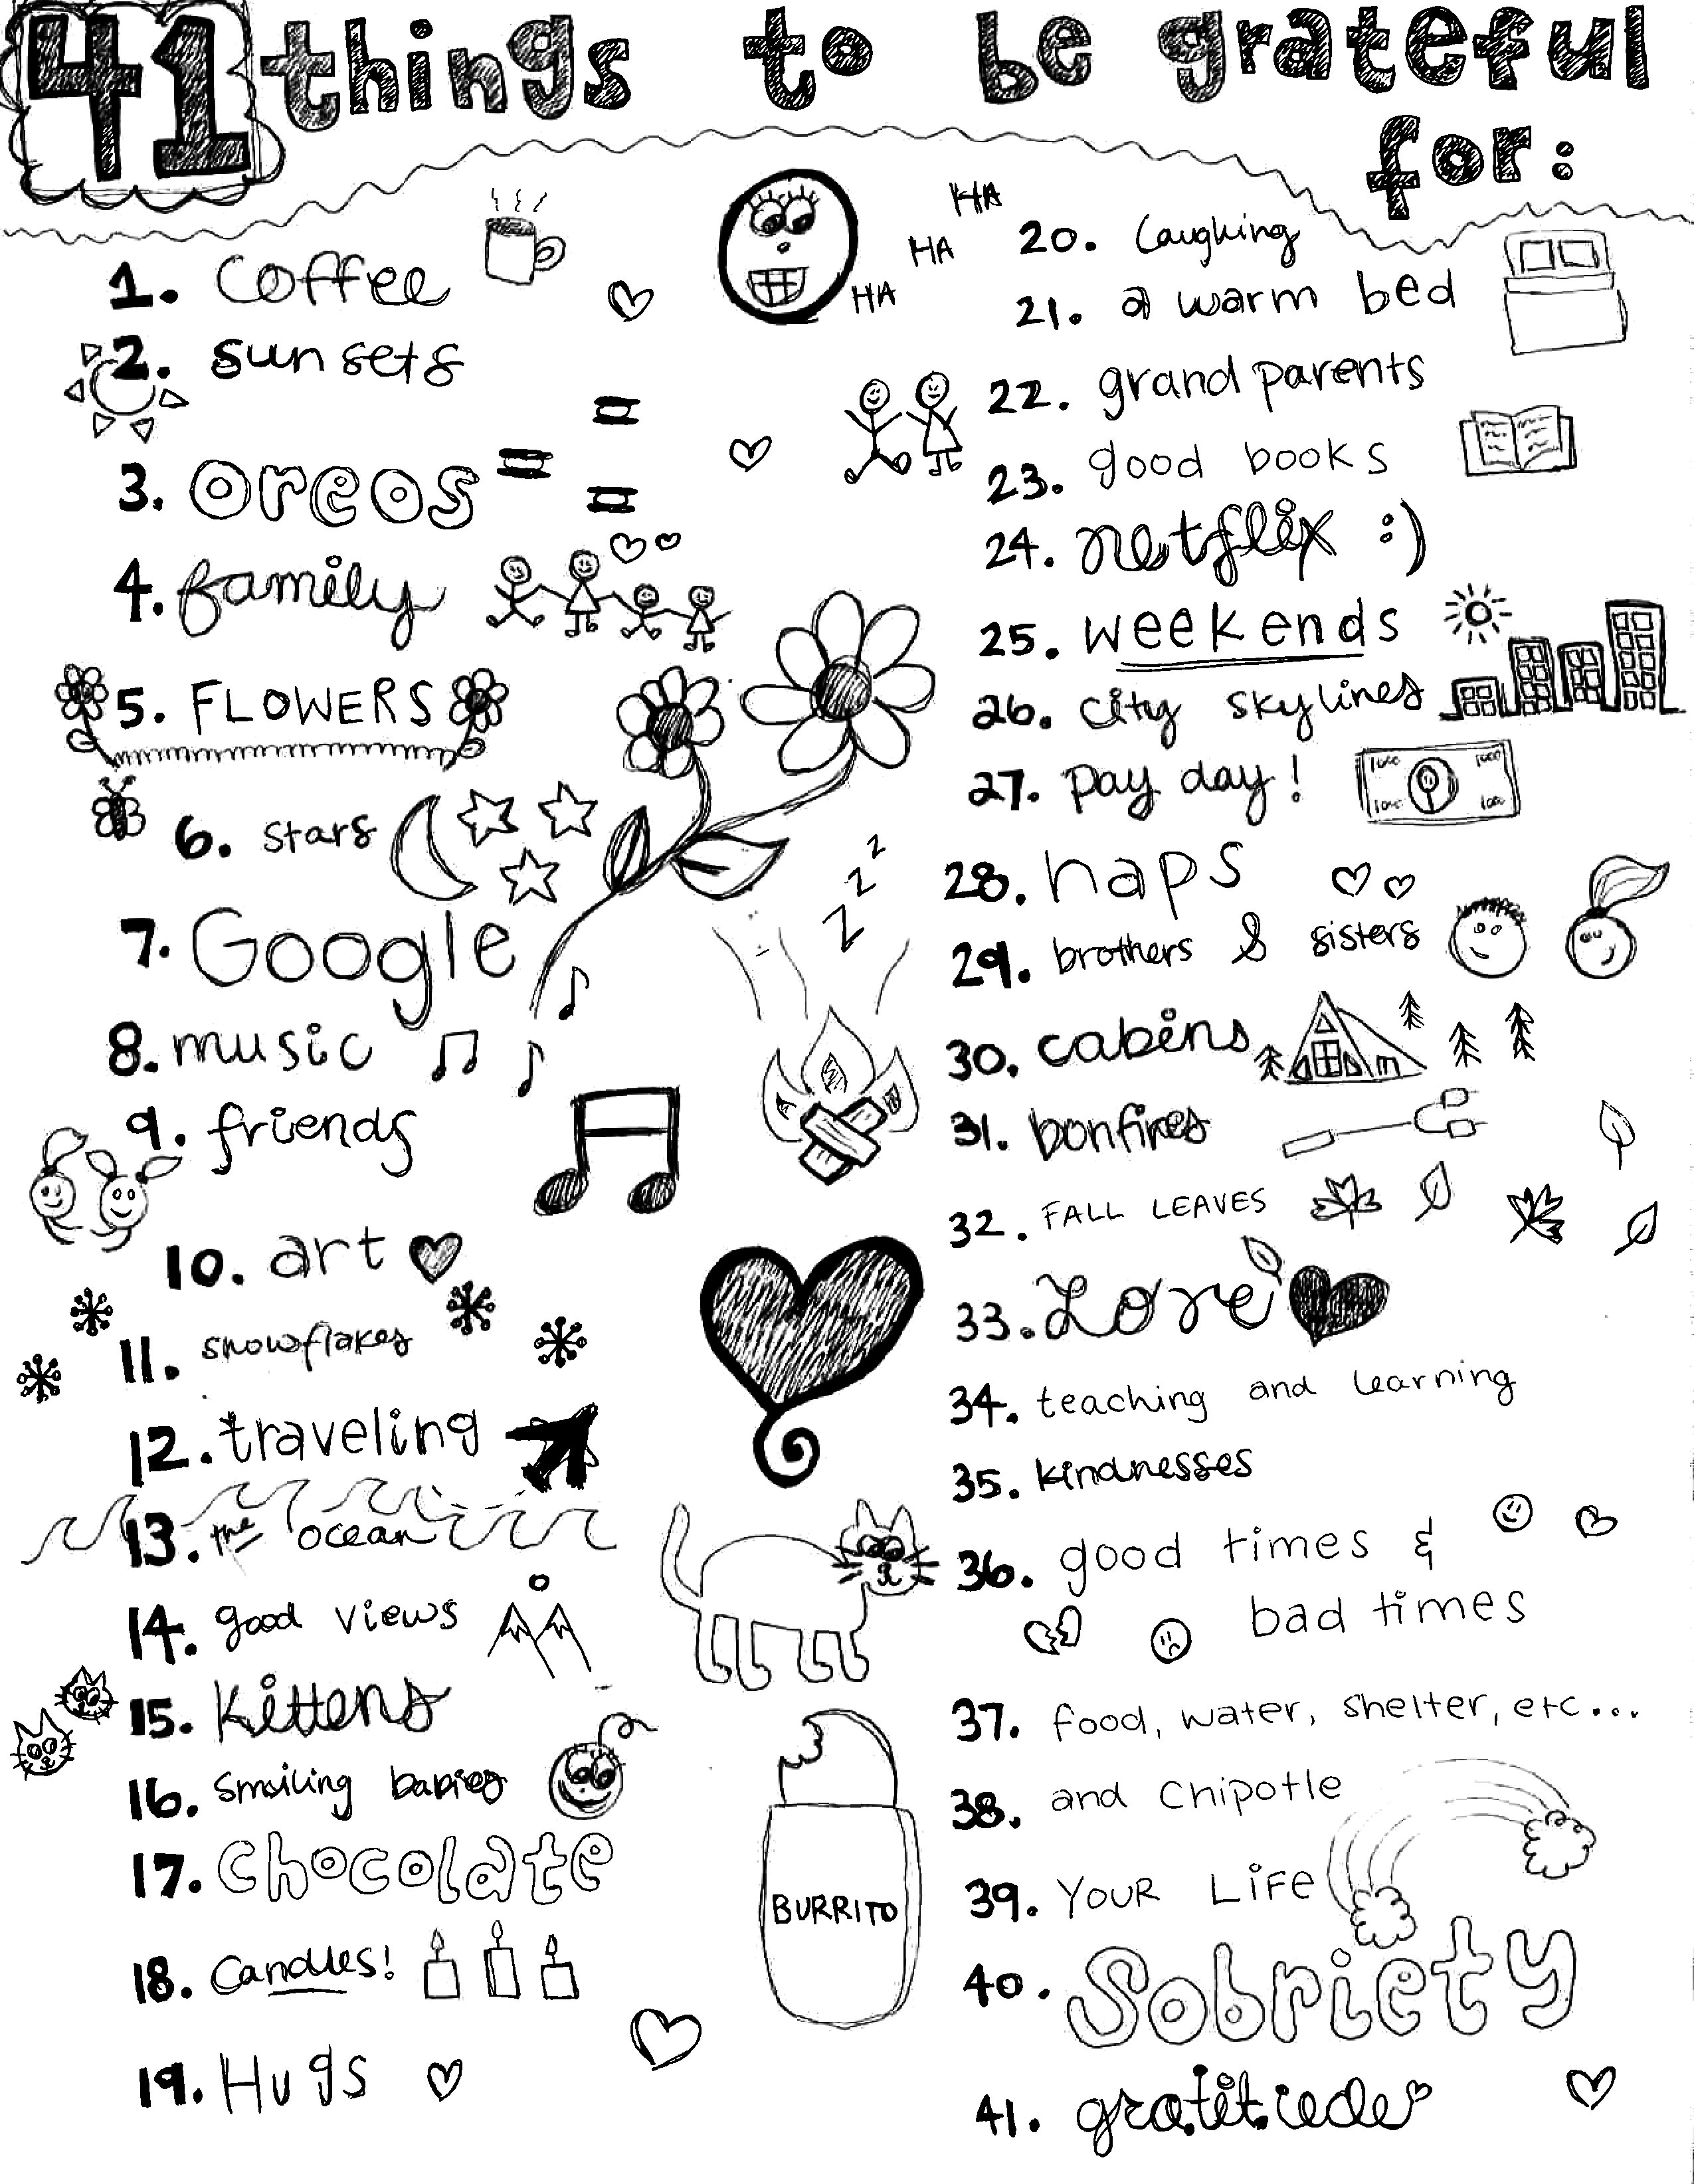 41 things to be grateful for: 1. Coffee. 2. Sunsets. 3. Oreos. 4. Family. 5. Flowers. 6. Stars. 7. Google. 8. Music. 9. Friends. 10. Art. 11. Snowflakes. 12. Traveling. 13. The Ocean. 14. Good Views. 15. Kittens. 16. Smiling Babies. 17. Chocolate. 18. Candles. 19. Hugs. 20. Laughing. 21. A Warm Bed. 22. Grandparents. 23. Good Books. 24. Netflix. 25. Weekends. 26. City Skylines. 27. Pay Day. 28. Naps. 29. Brothers & SIsters. 30. Cabins. 31. Bonfires. 32. Fall Leaves. 33. Love. 34. Teaching and Learning. 35. Kindnesses. 36. Good Times and Bad Times. 37. Food, Water, Shelter, Etc... 38. ...and Chipotle. 39. Your Life. 40. Sobriety. 41. Gratitude.